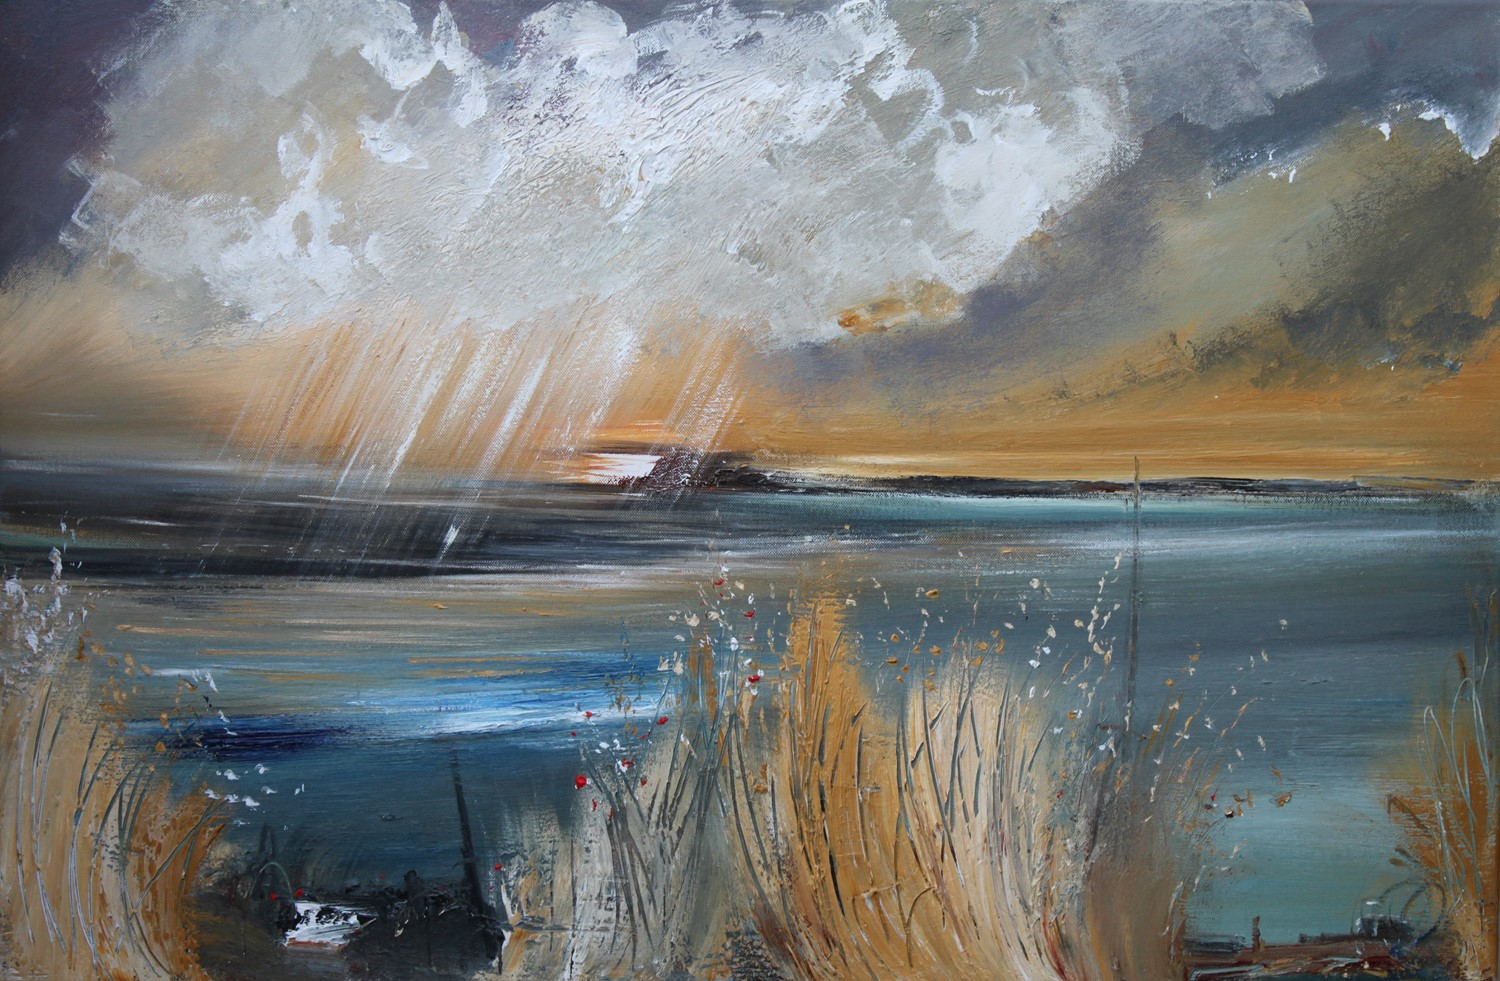 'Washed Ashore' by artist Rosanne Barr